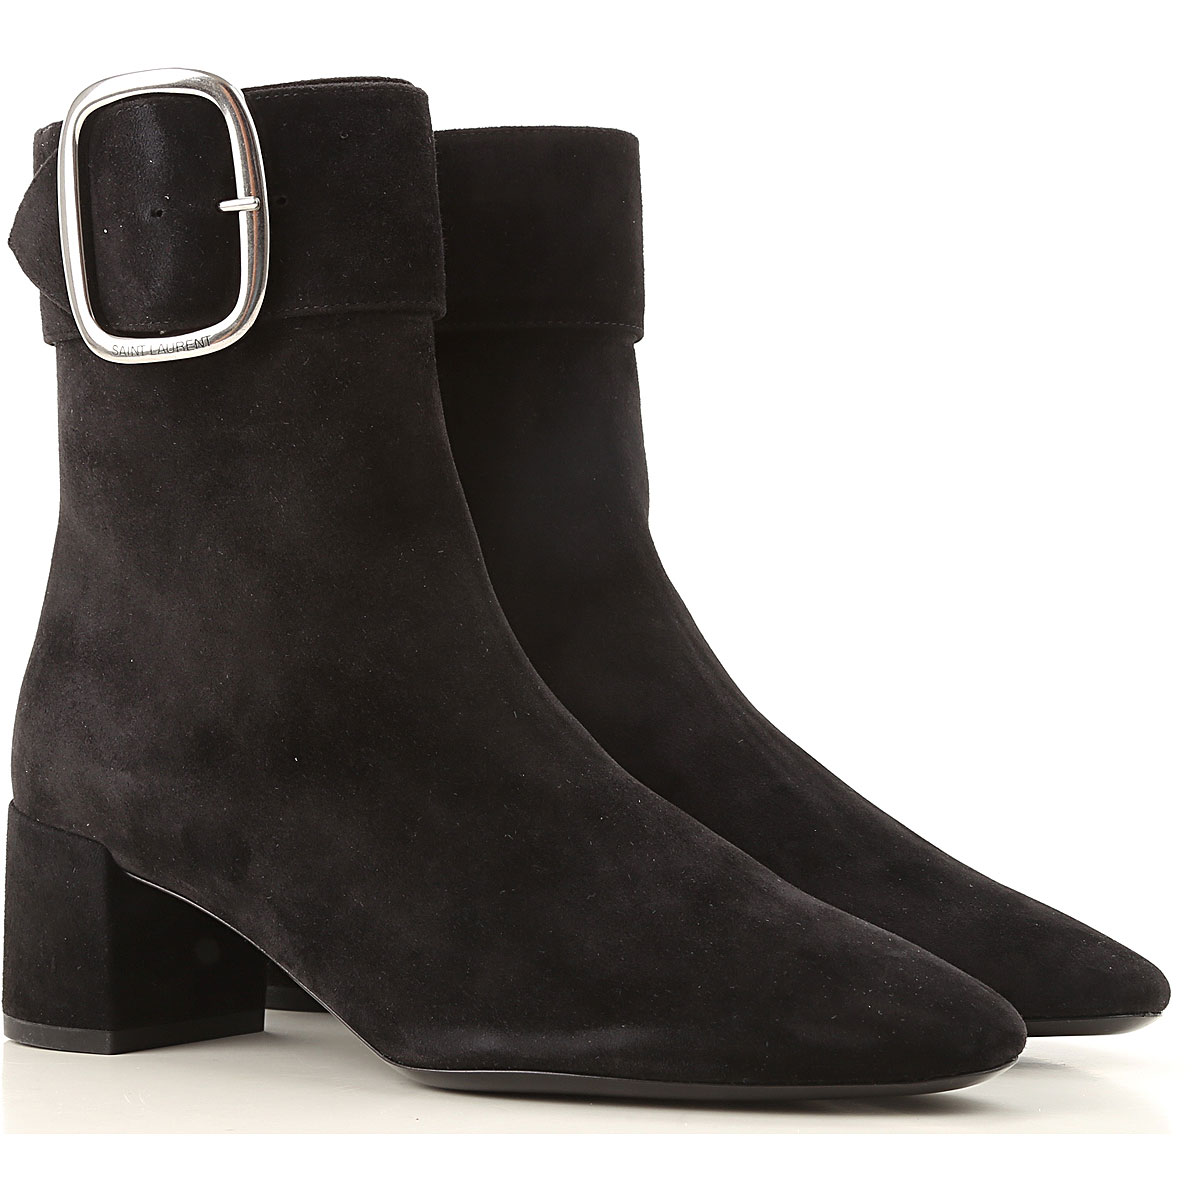 Yves Saint Laurent Boots For Women, Booties On Sale In Outlet, Black, Suede Leather, 2021, 2.5 3 4 7.5